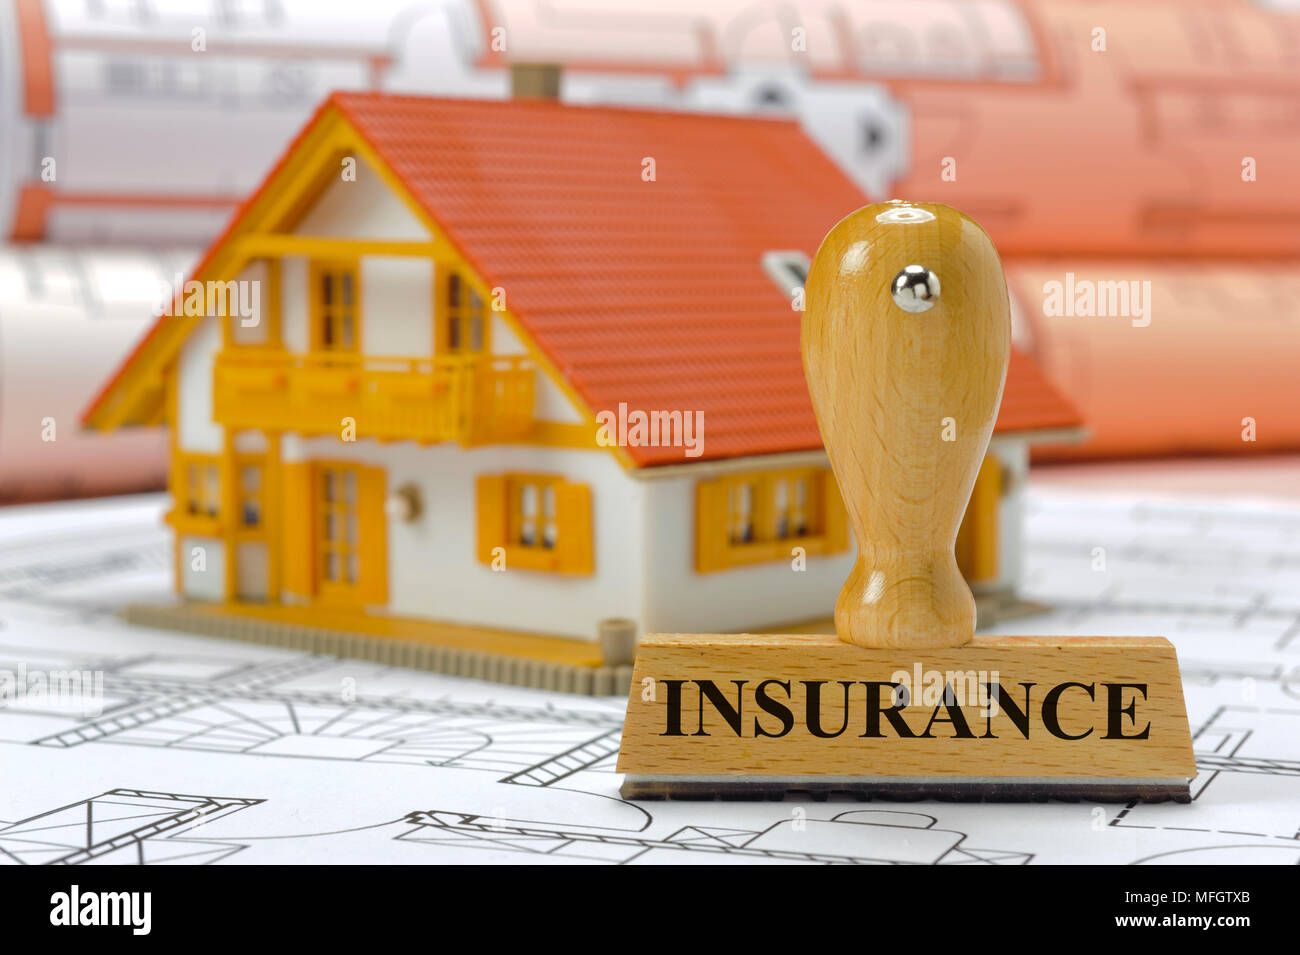 insurance marked on rubber stamp with model house and construction plan - Stock Image